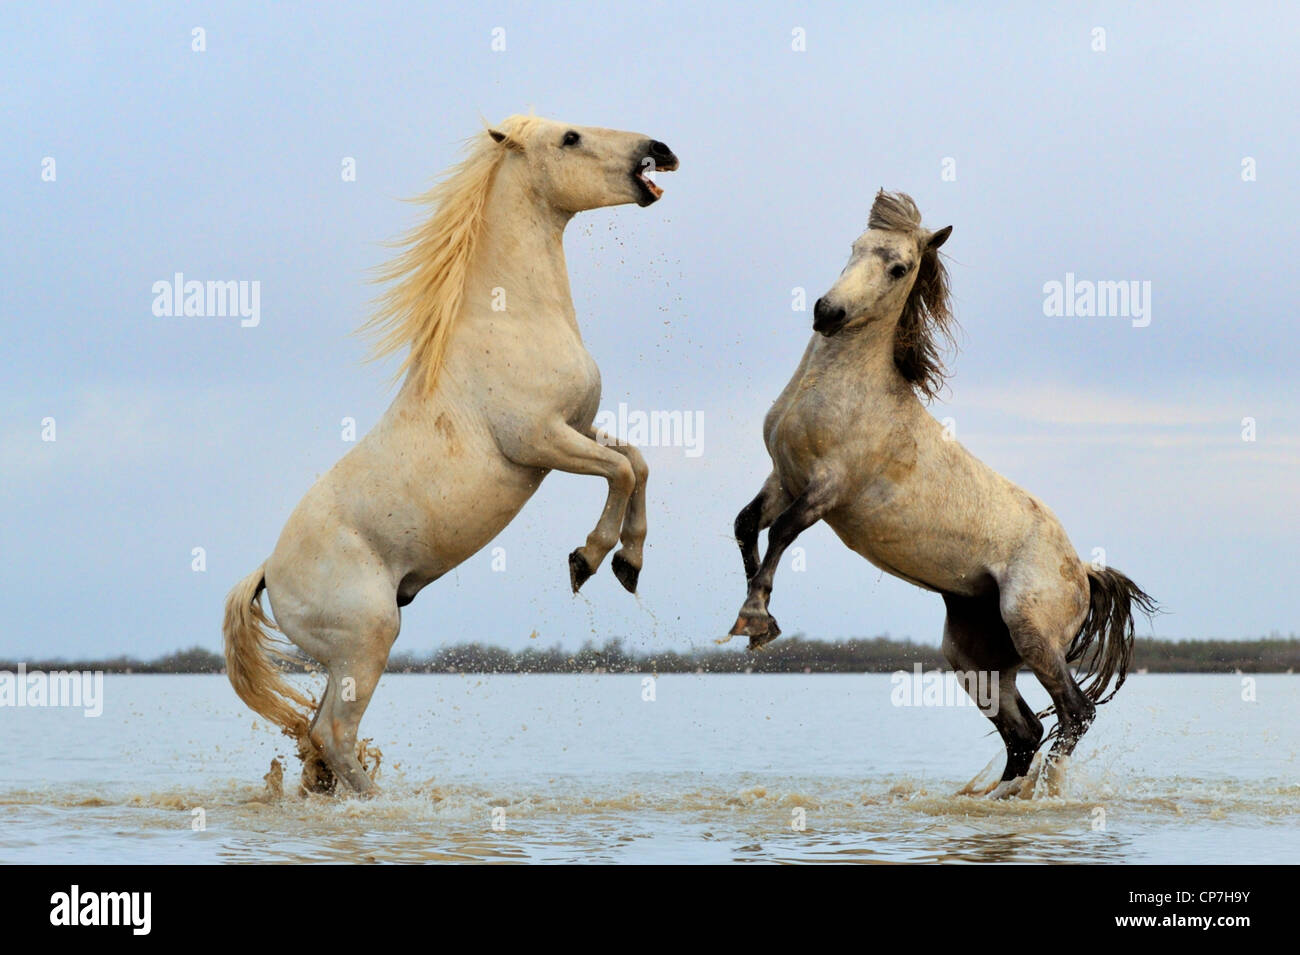 White horse in the Camargue, France - Stock Image